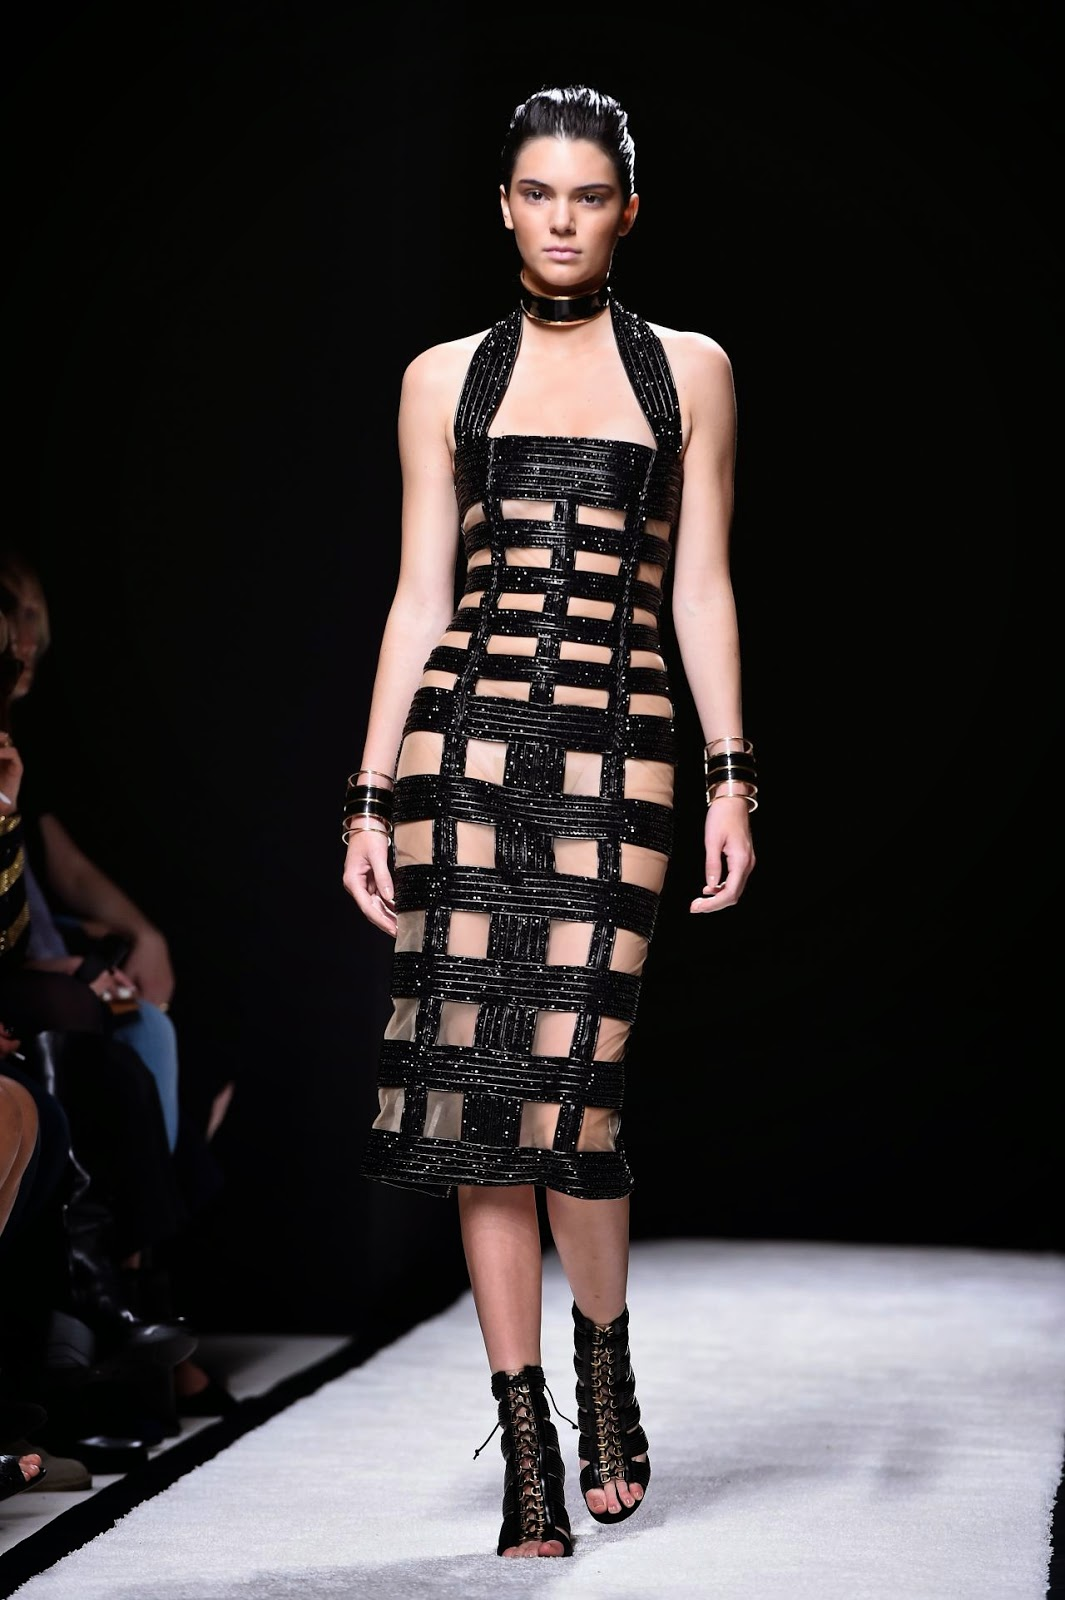 Kendall Jenner is sexy in a cutout dress on the Balmain Spring/Summer 2015 Paris Fashion Week Runway